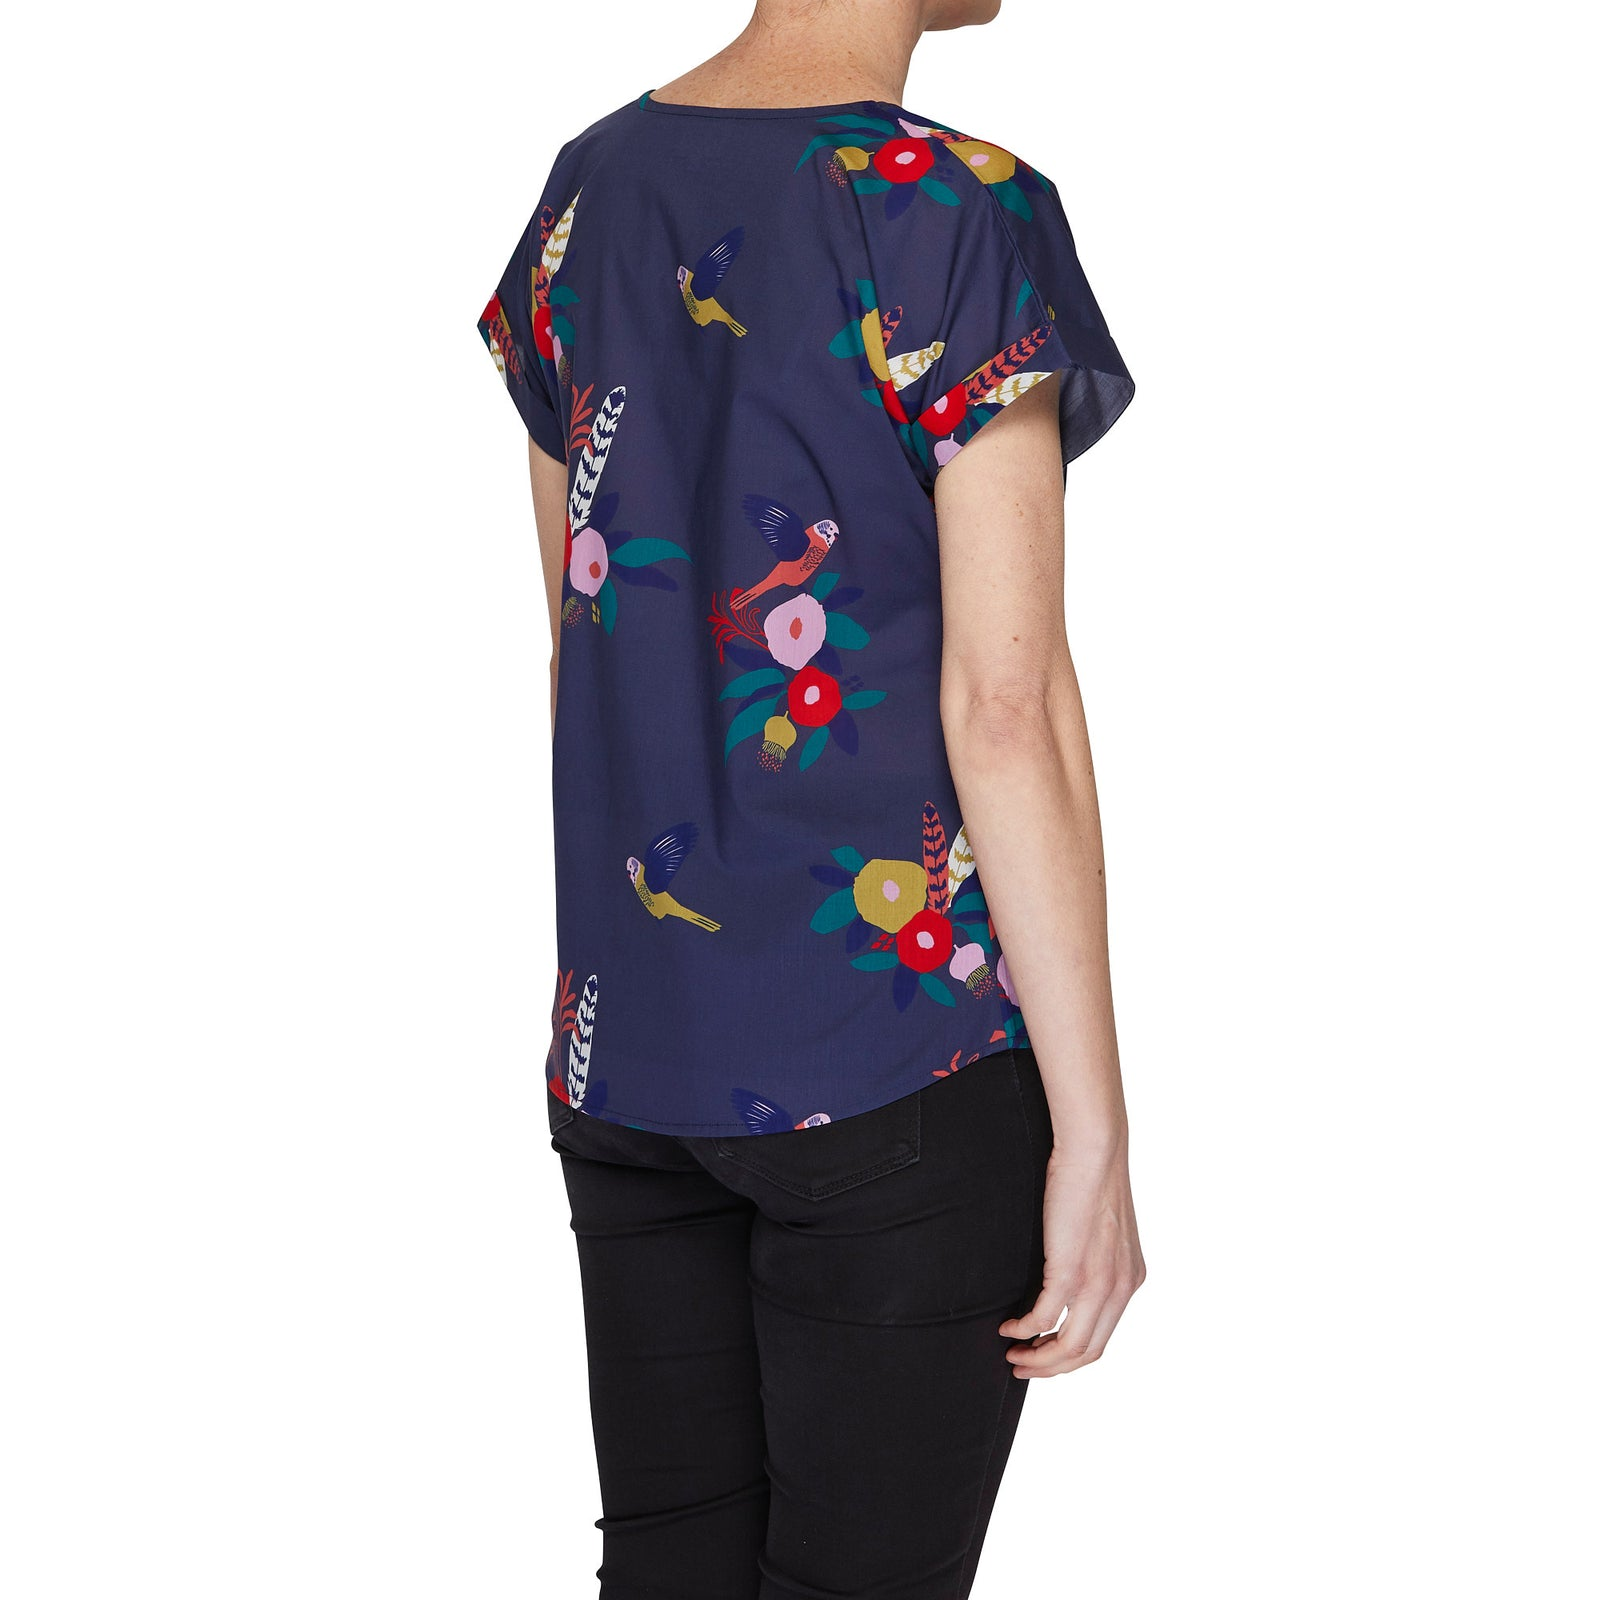 Box Tee Blouse - Budgie Bouquet